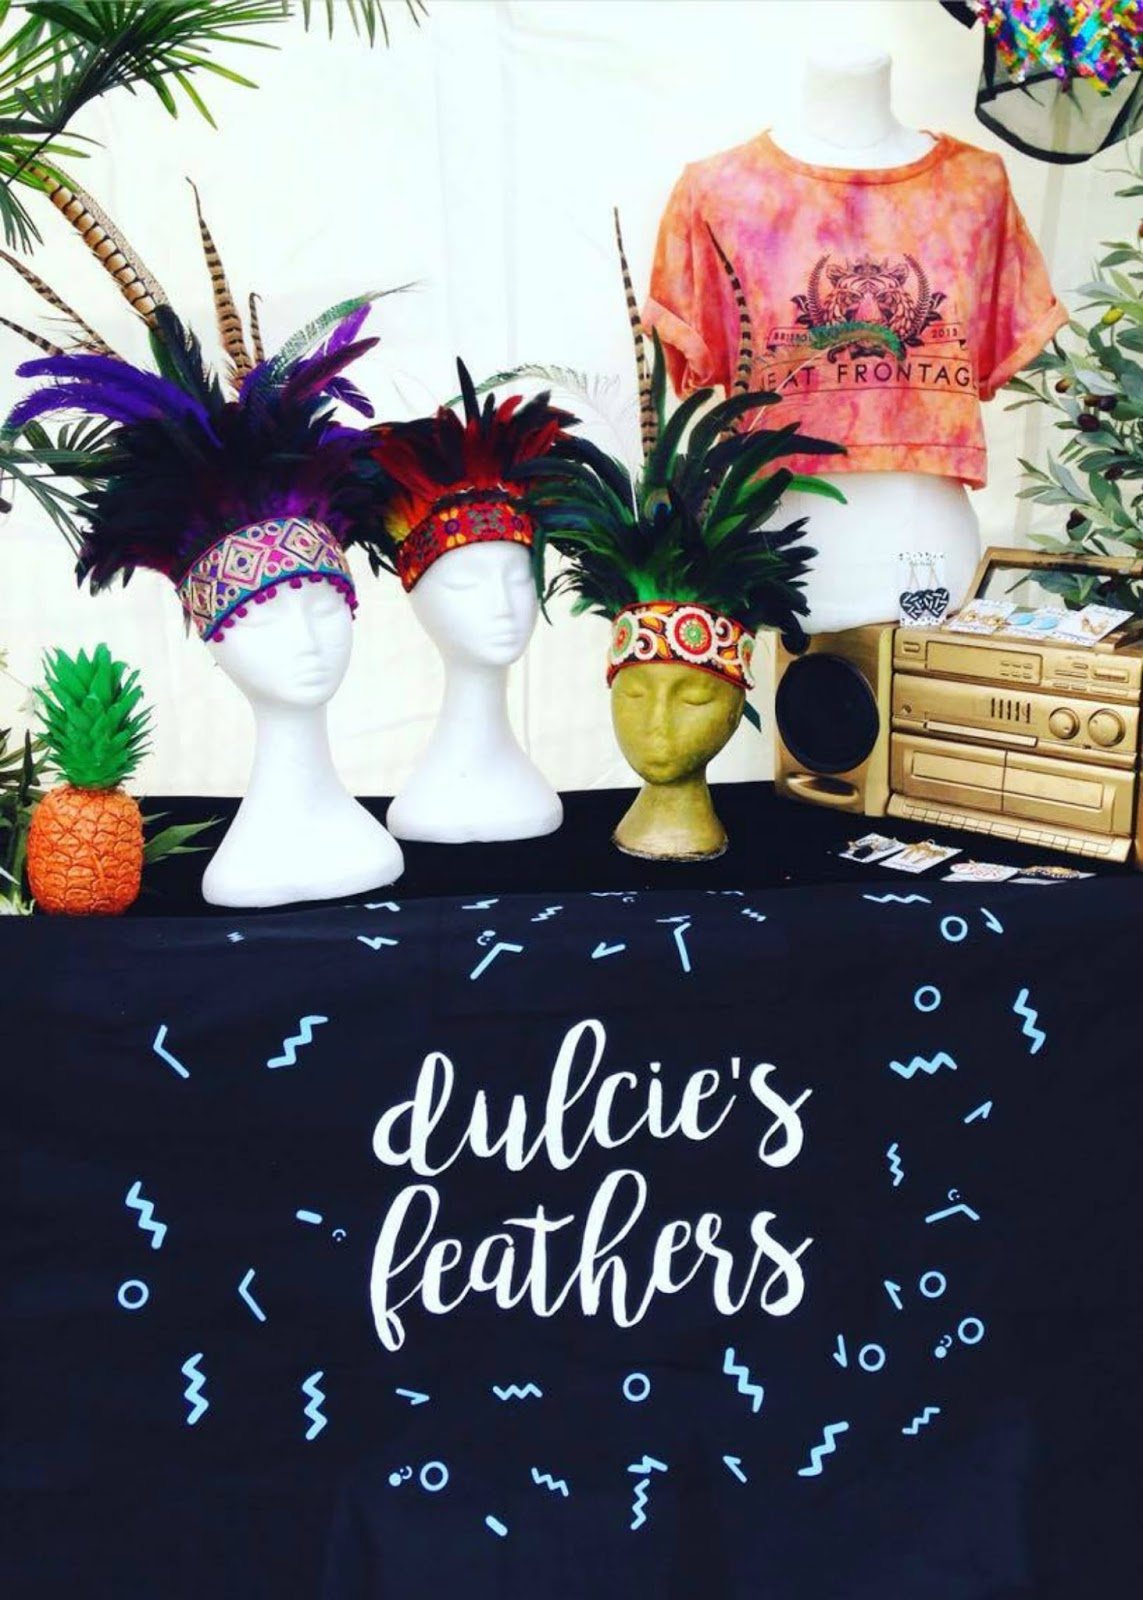 Love Saves the Day, Dulcie's Feathers, feather headdresses, Bristol, stall